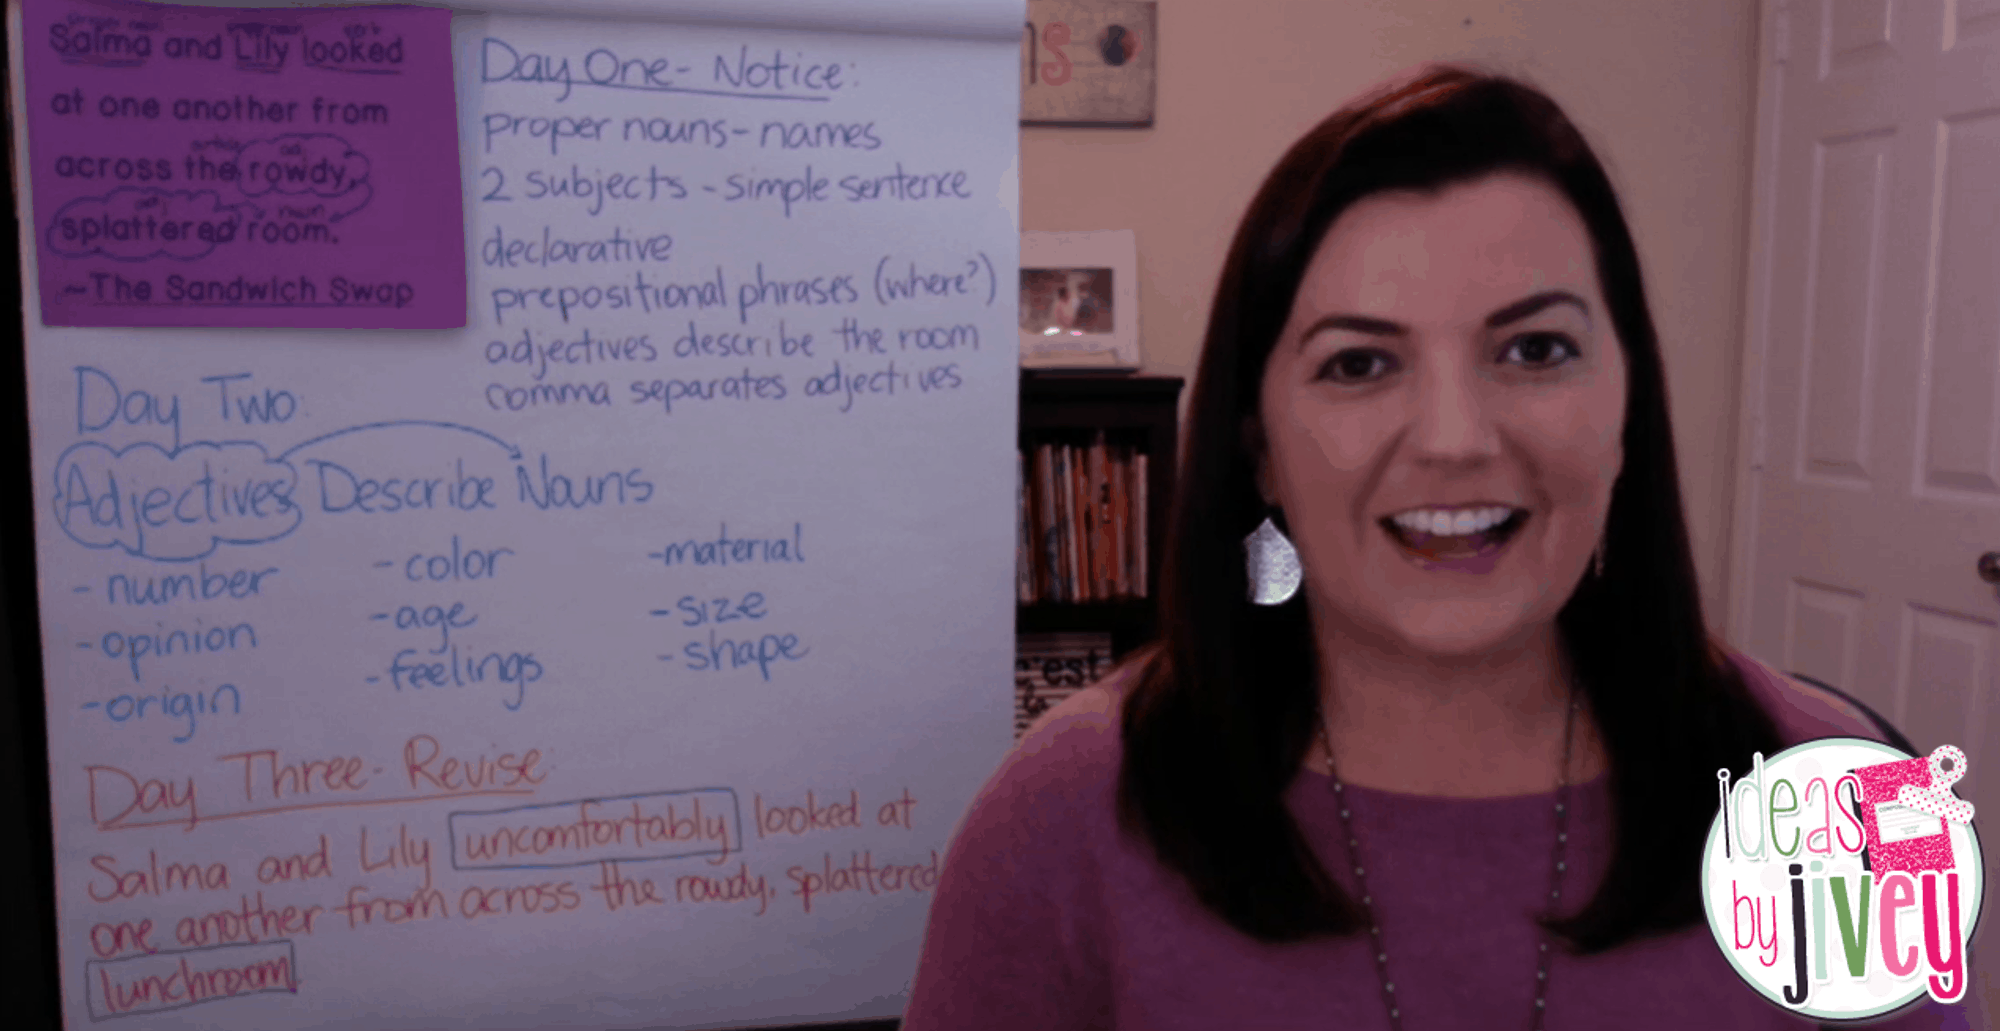 Don't skip mentor sentences during home learning days! Teaching mentor sentences digitally is still possible. Check out these tips to be successful.